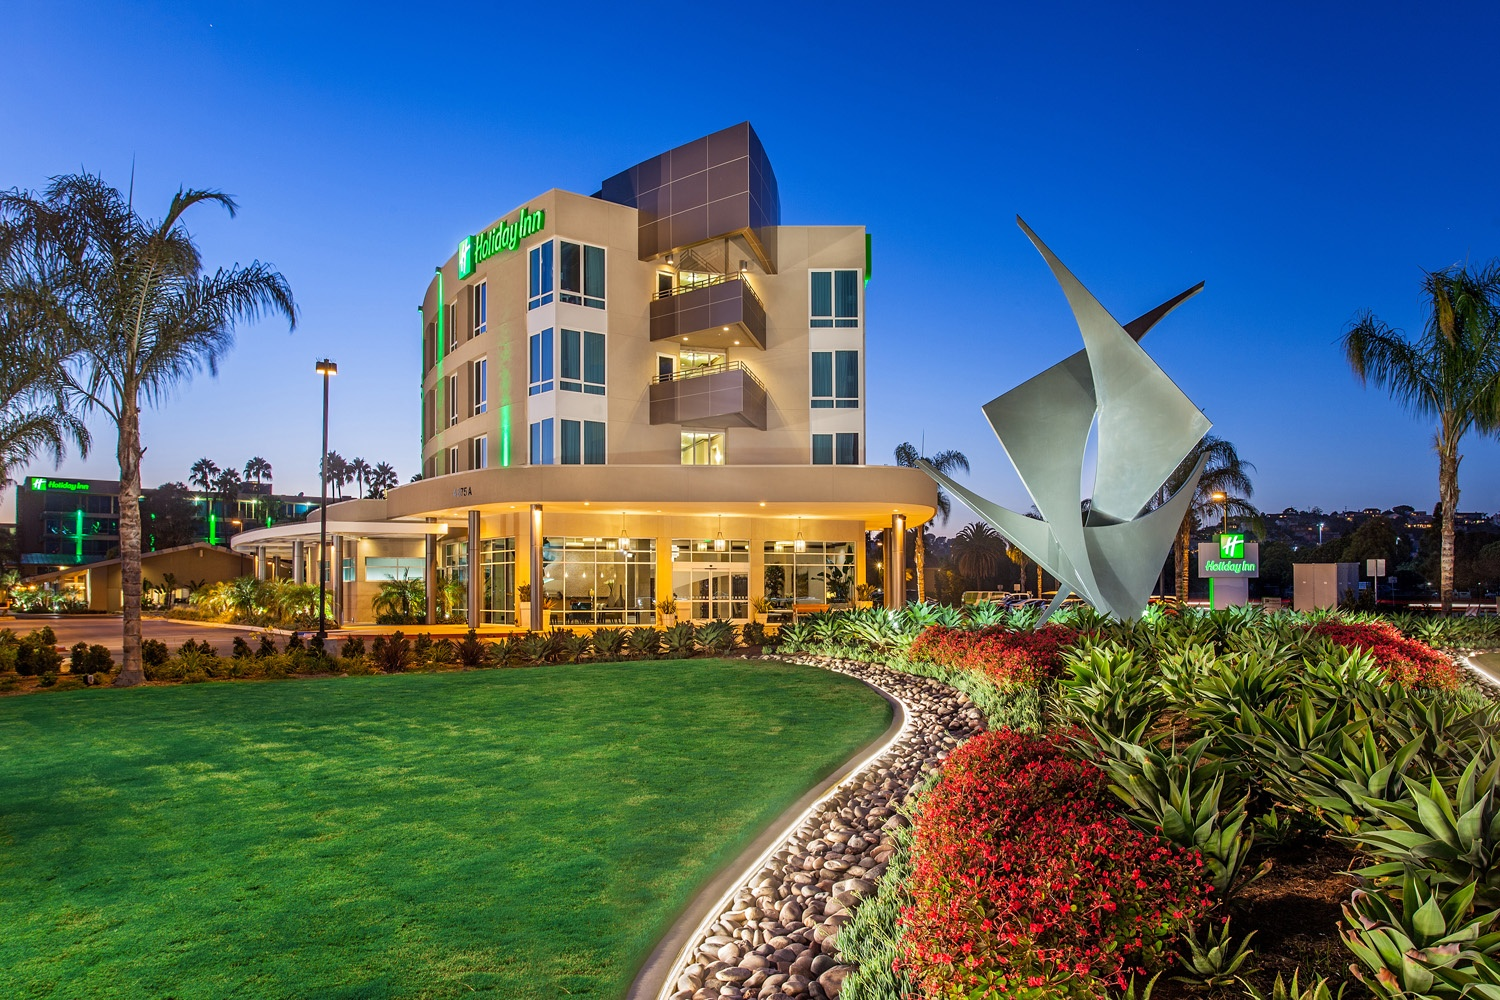 Lodging Hotel Gator By The Bay Zydeco Blues Festival